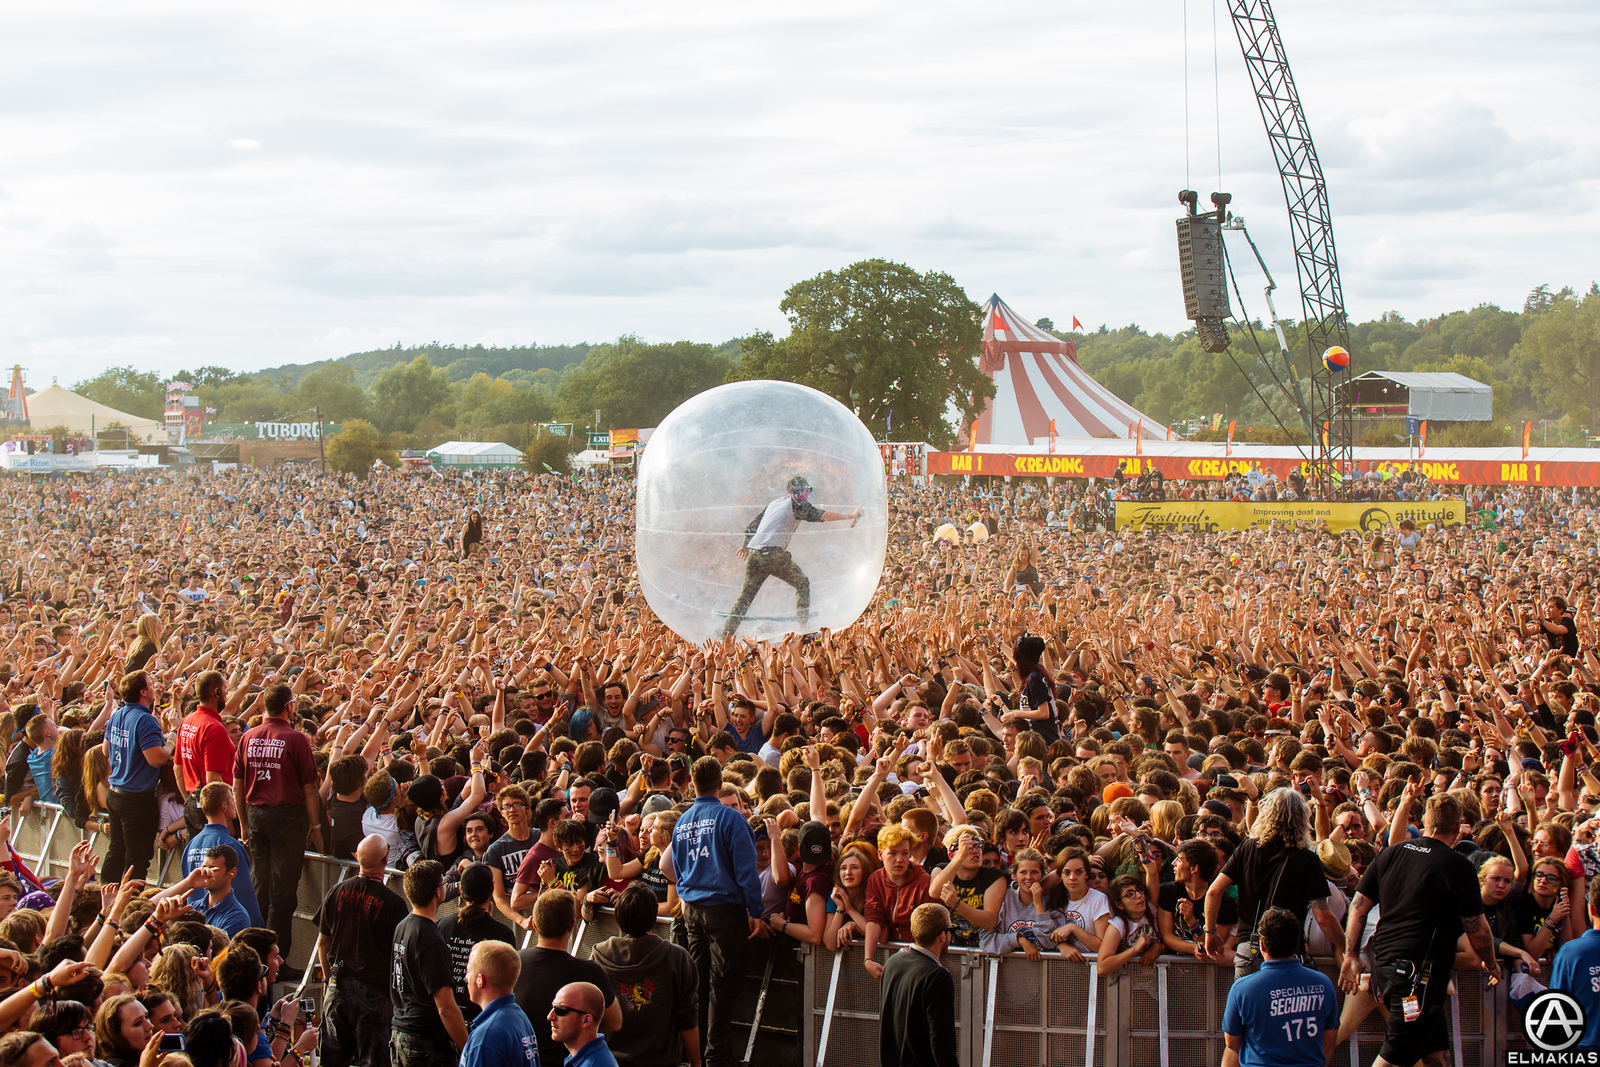 Jeremy McKinnon in his ball at Reading Festival